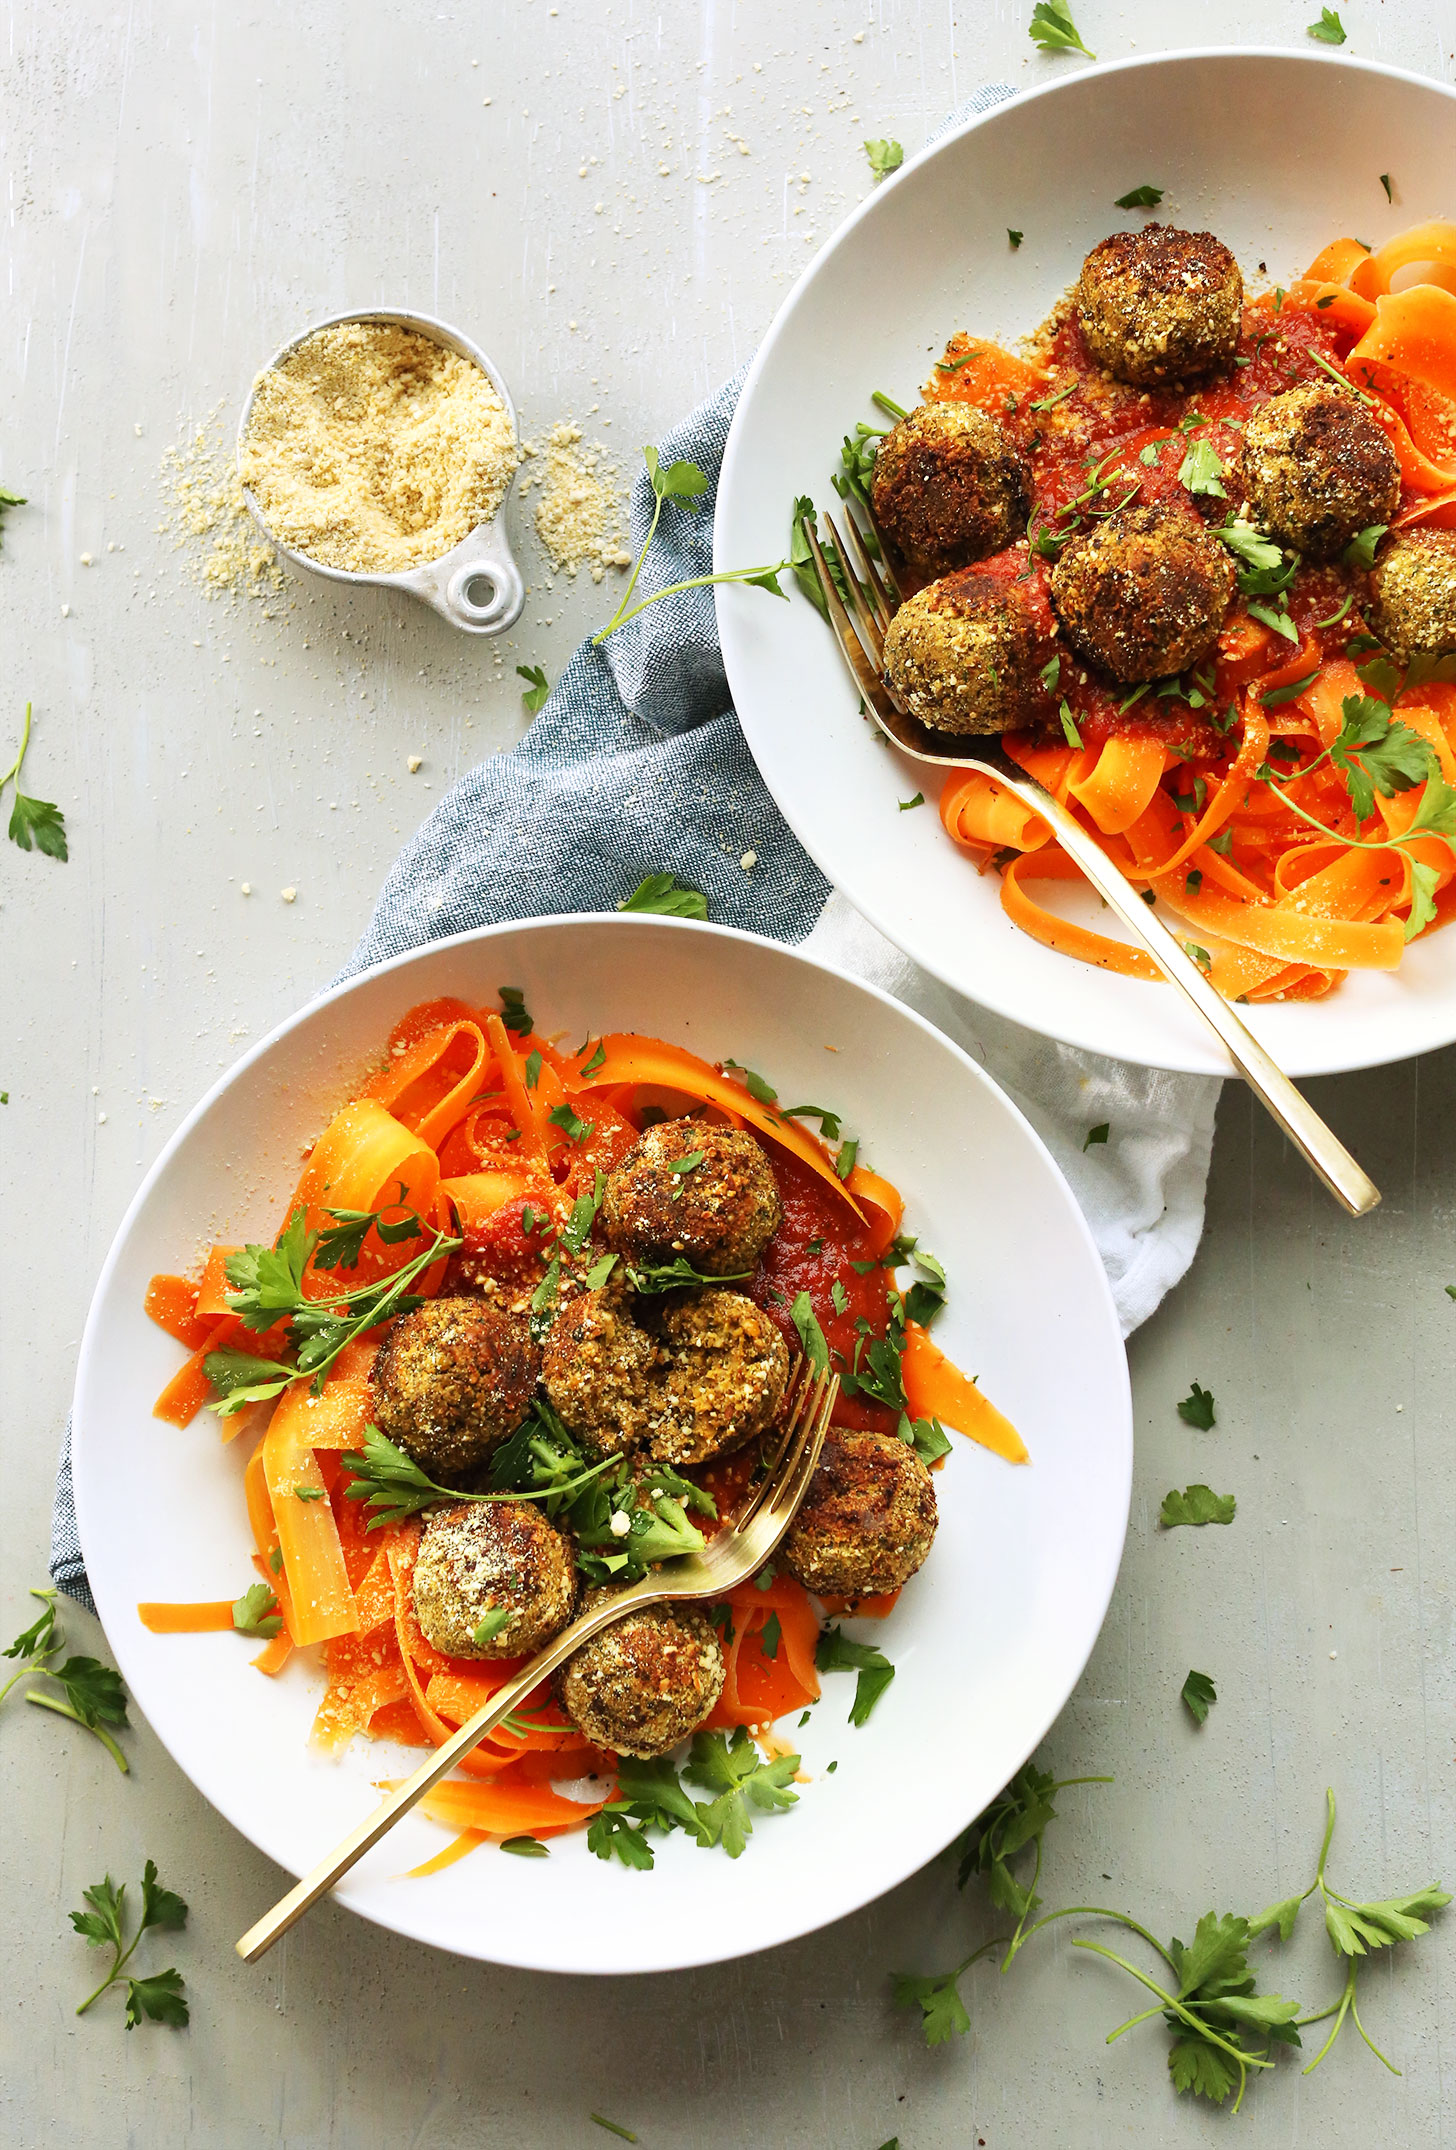 Dinner bowls filled with carrot noodles topped with our easy vegan lentil meatballs recipe